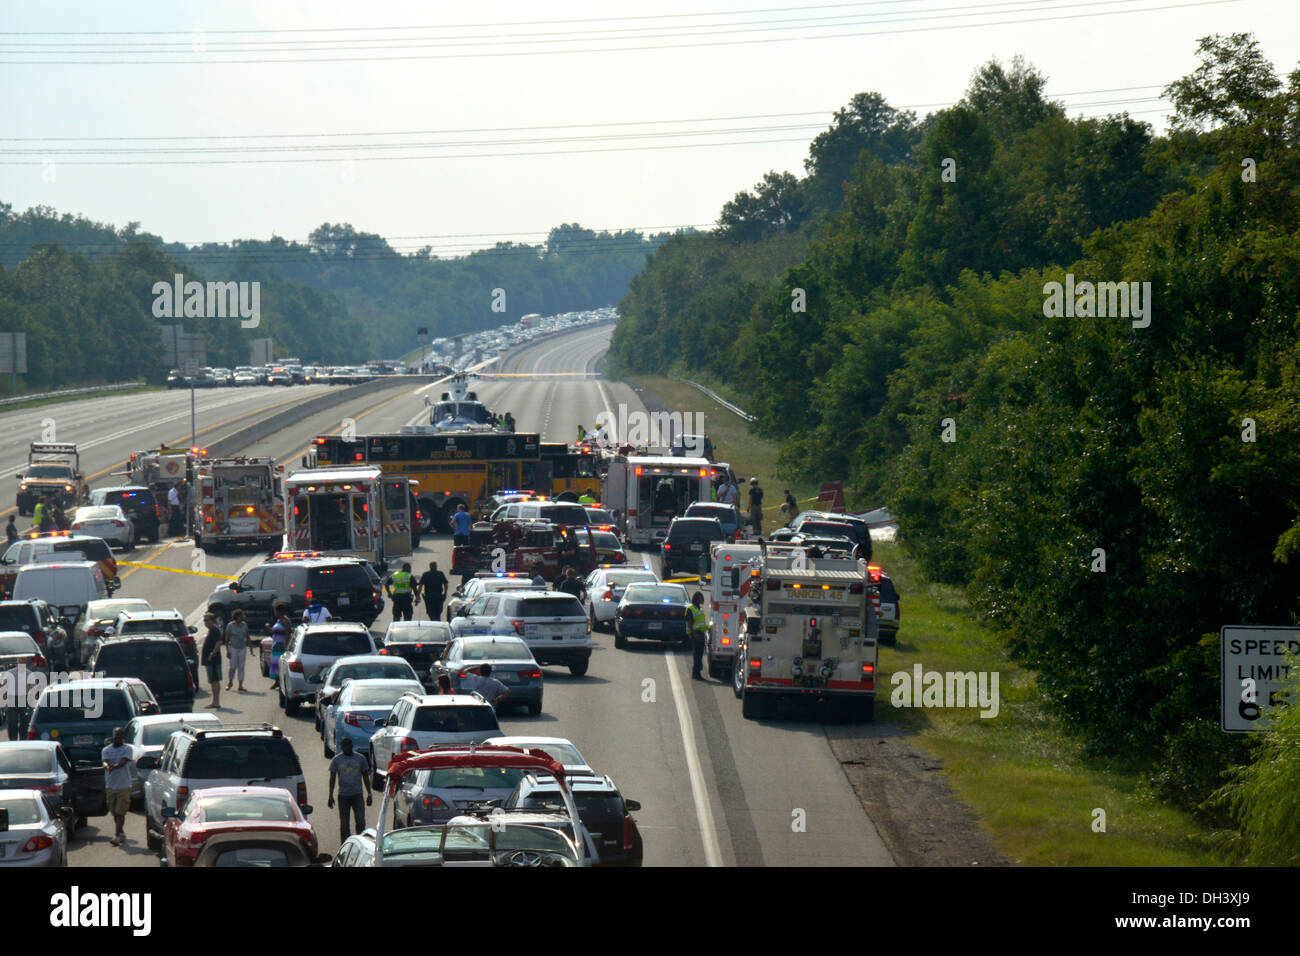 Traffic gridlock after crash on a highway in Bowie,Md - Stock Image